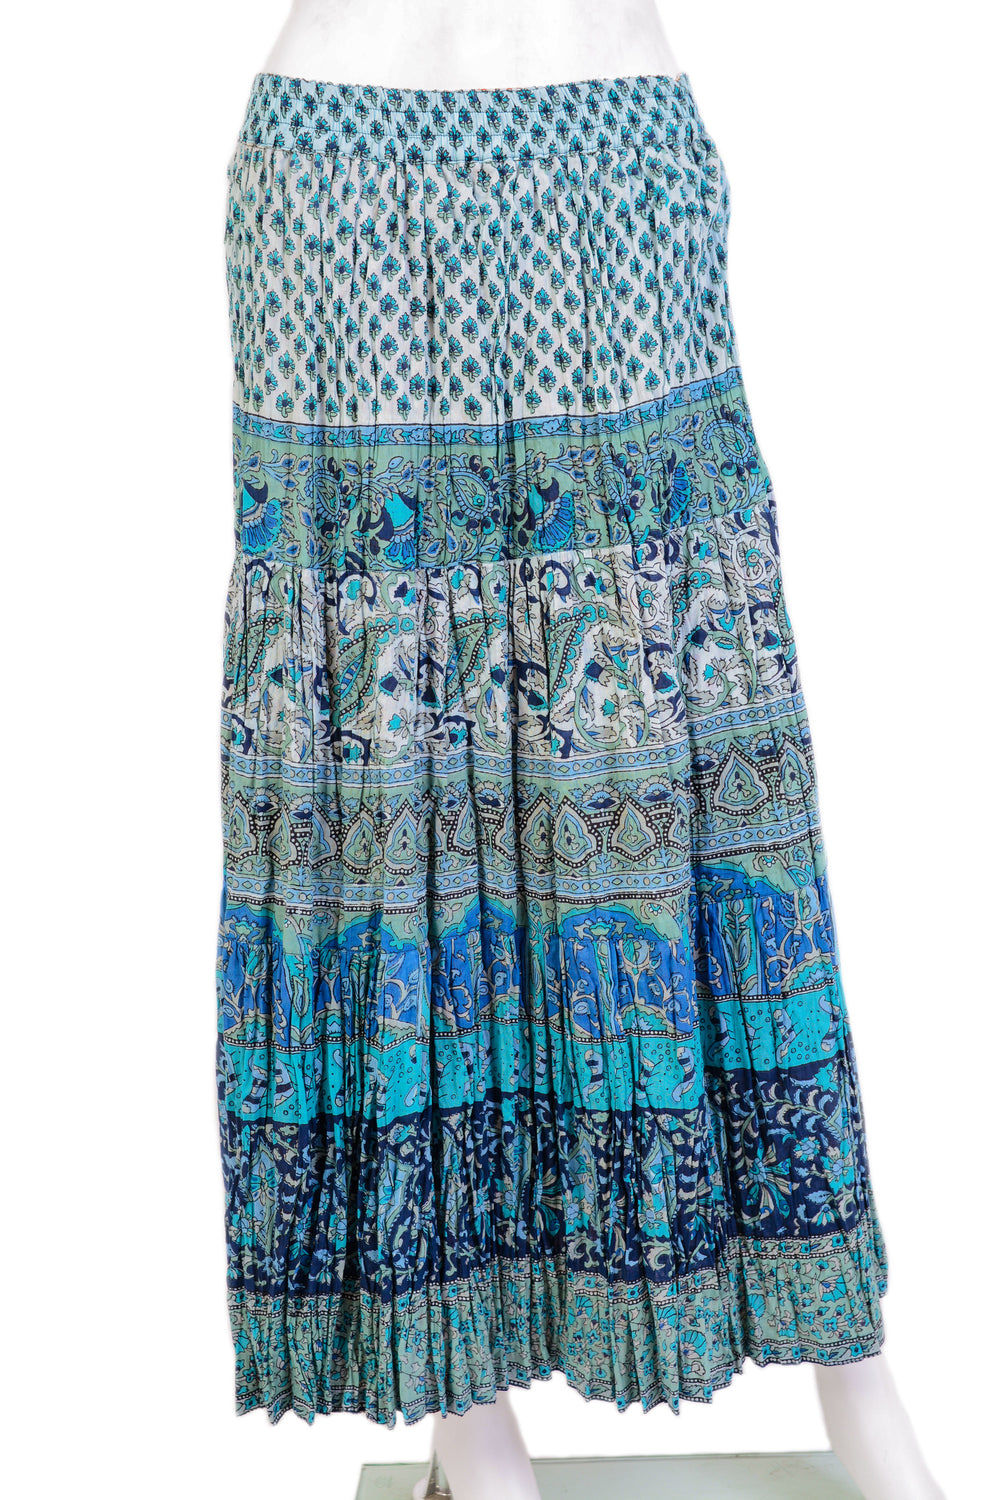 802aa43bc6 printed crinkle broomstick skirt with elastic waist. Ankle length